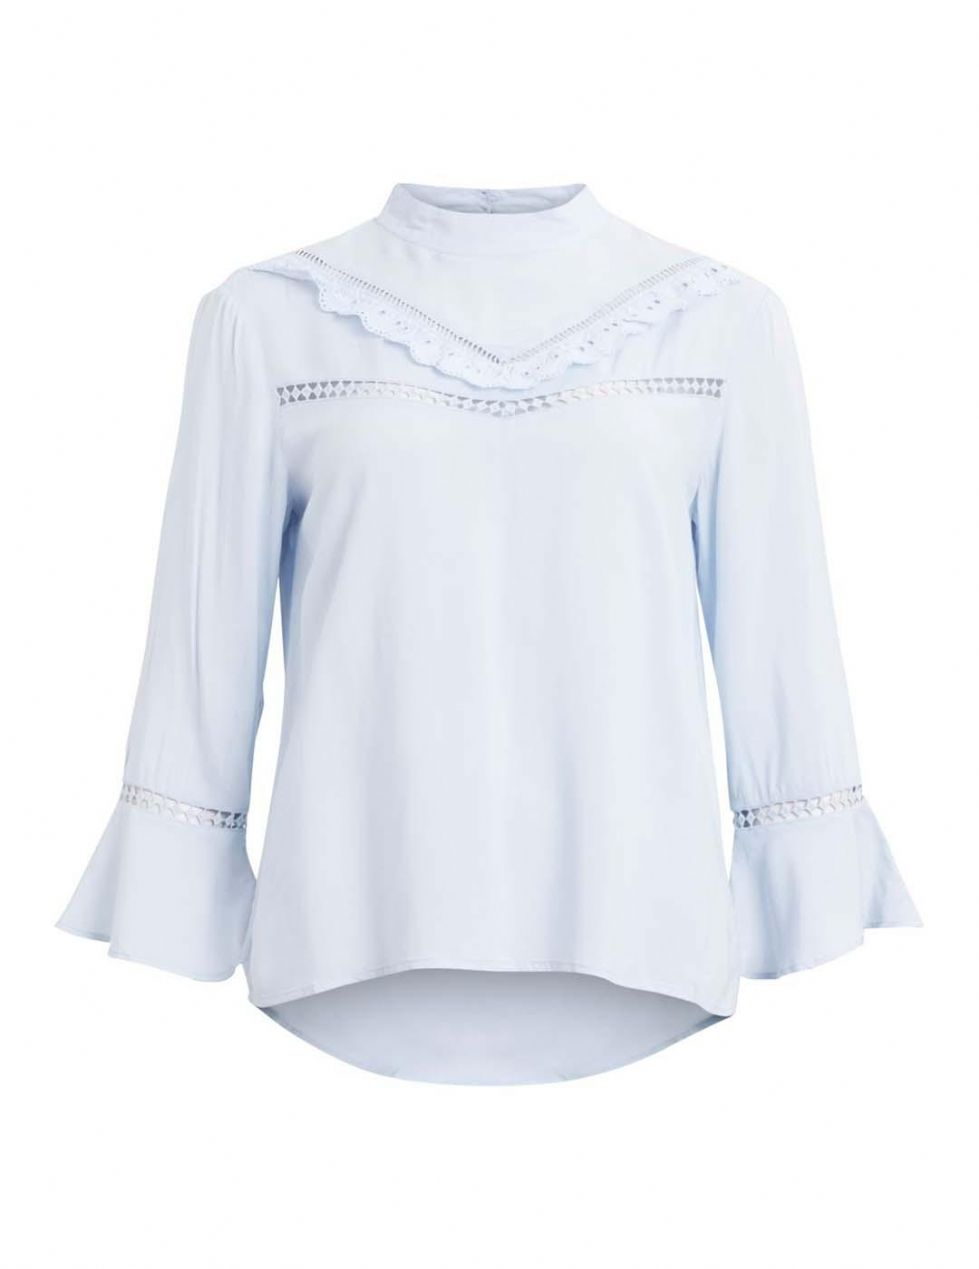 VINEVA 3/4 SLEEVE TOP